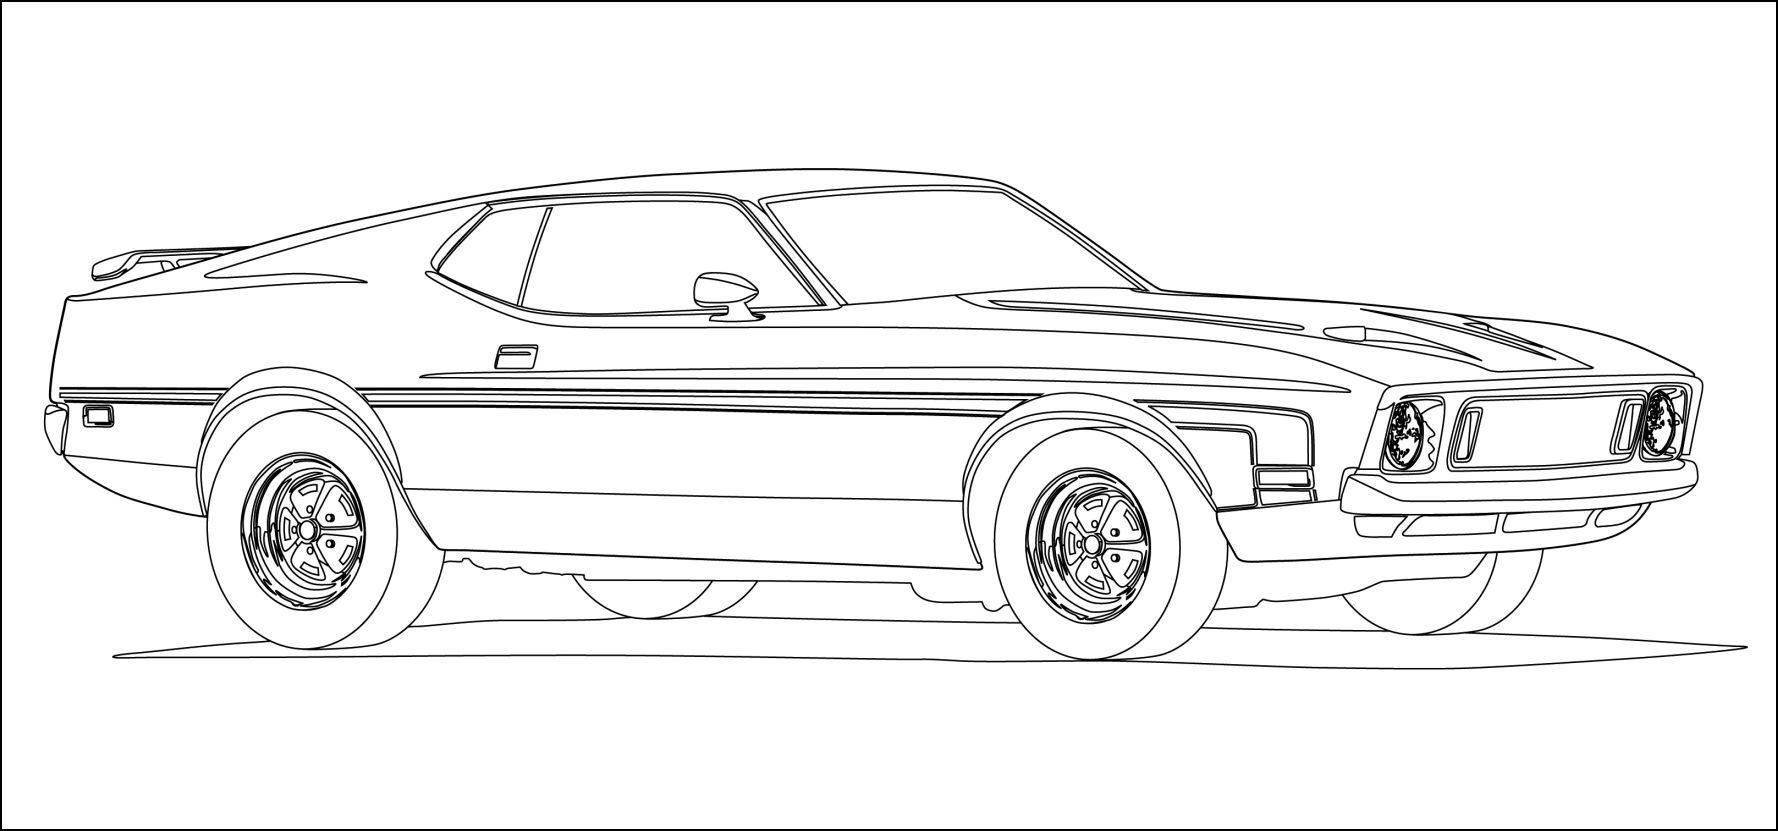 Ford Mustang Coloring Pages 01